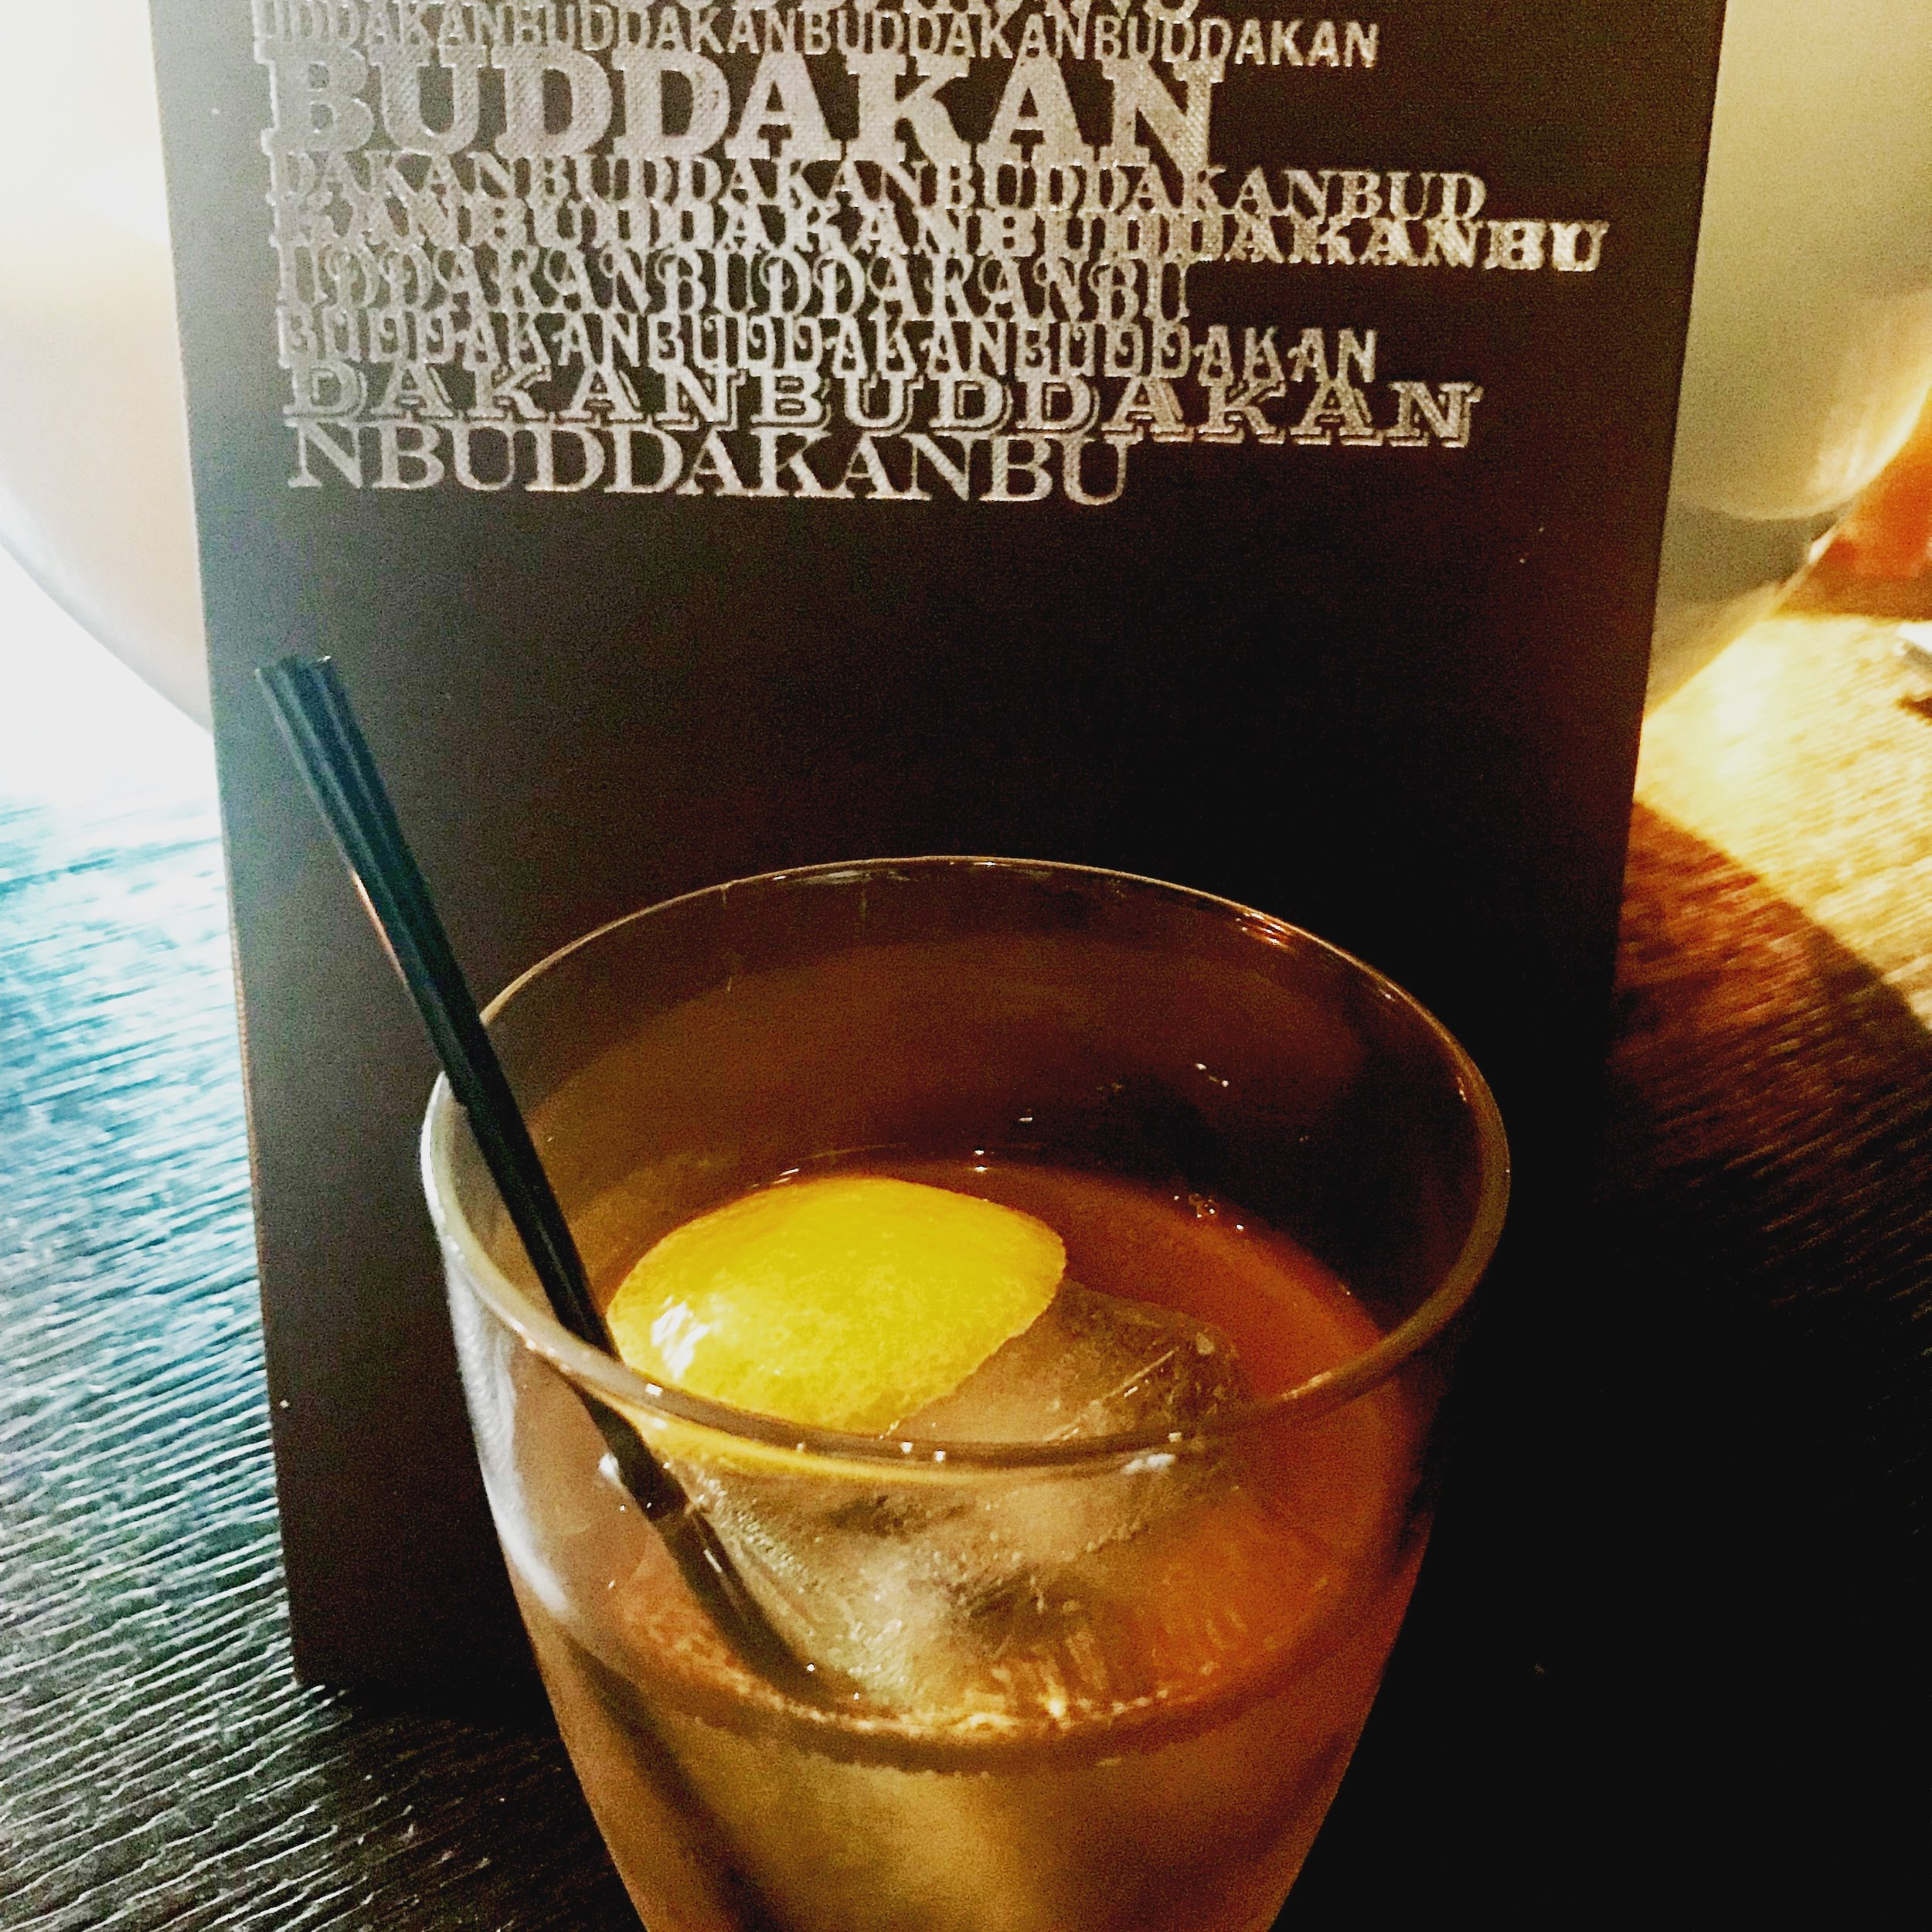 Surrender    cocktail at Buddakan NYC